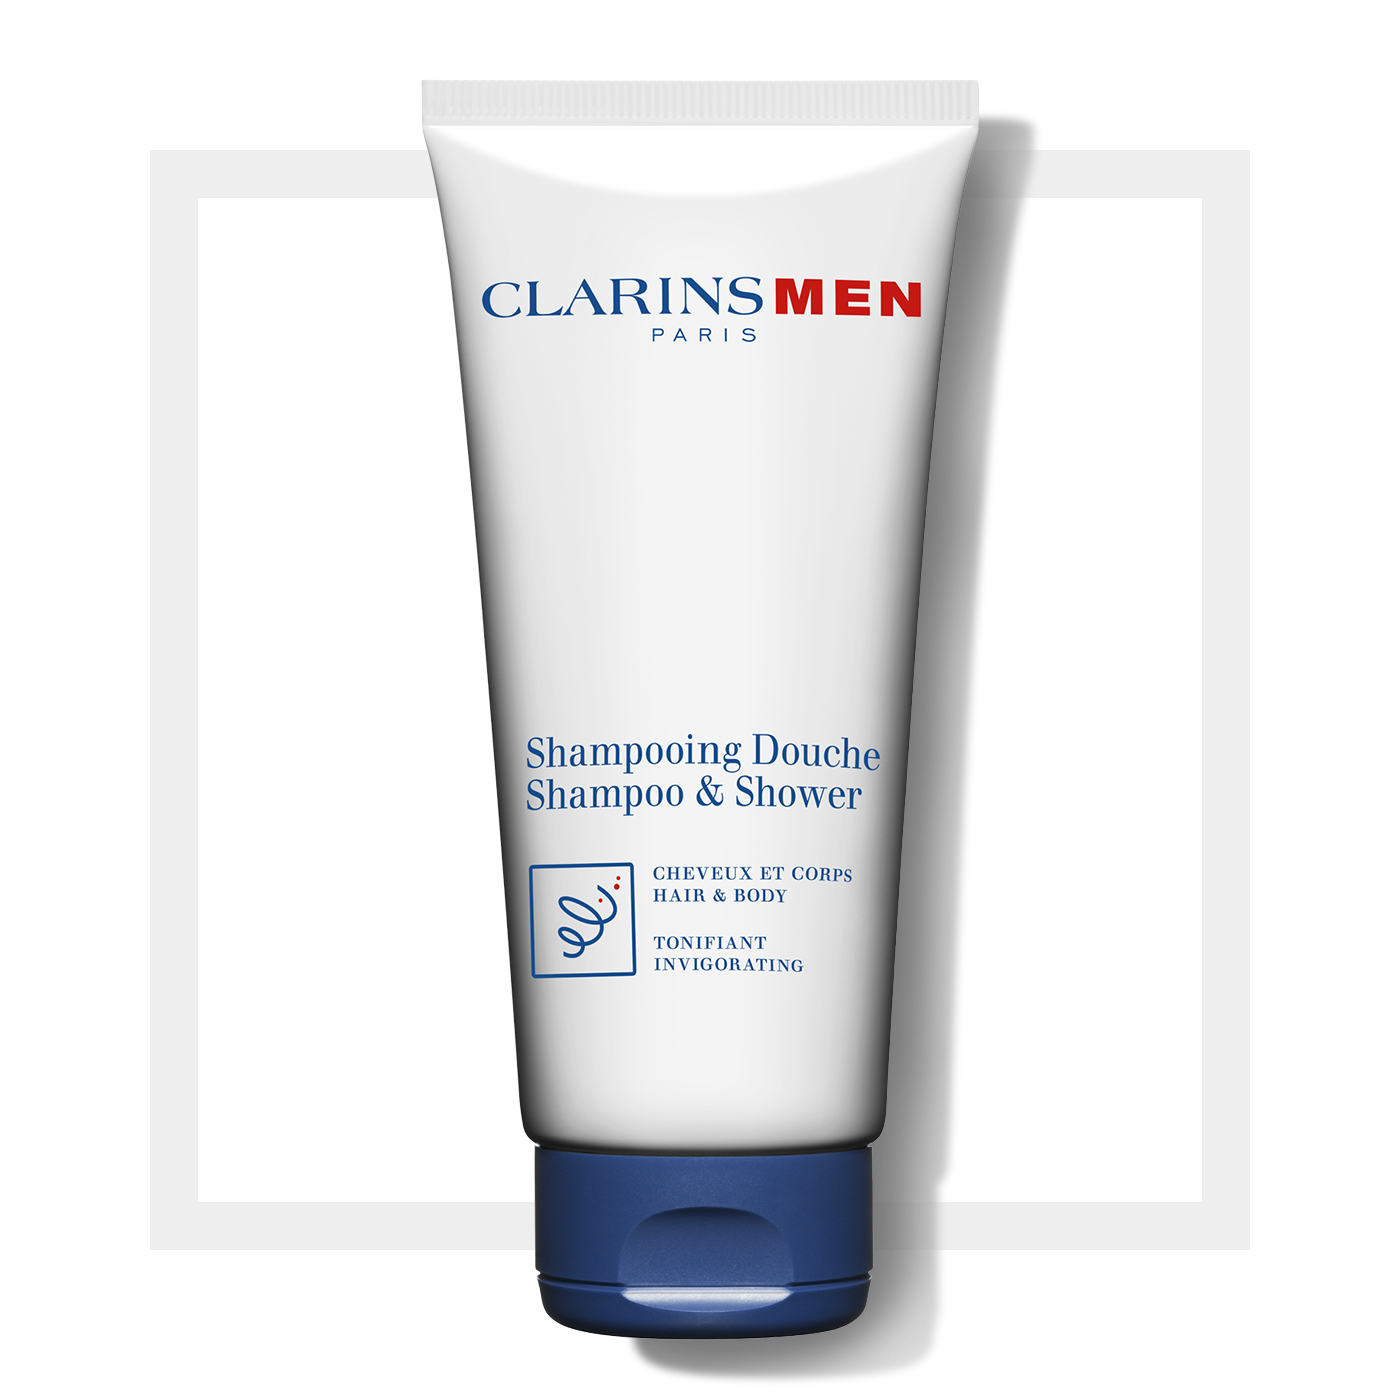 ClarinsMen Shampoo and Shower, Hair and Body Cleansing, ClarinsMen ...